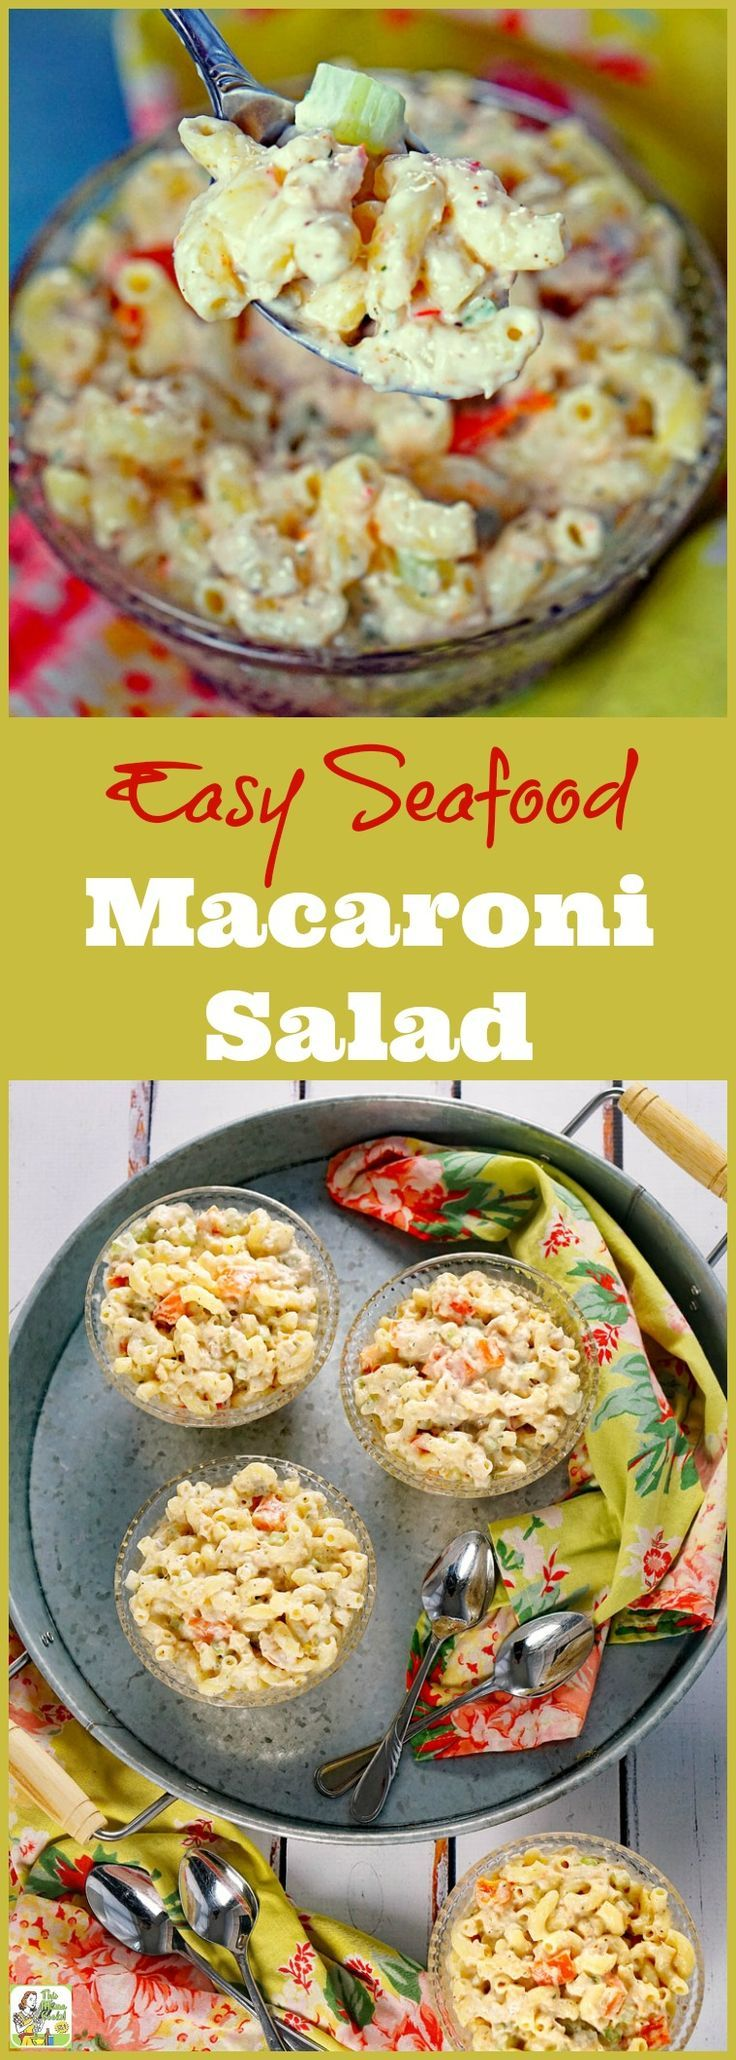 Need the perfect Easy Seafood Macaroni Salad for your brunch or barbecue party? Click to gThis easy pasta salad recipe contains baby shrimp, bell peppers, dill, seafood seasoning blend, and lite mayonnaise. It can be made with gluten free or whole wheat macaroni, too!